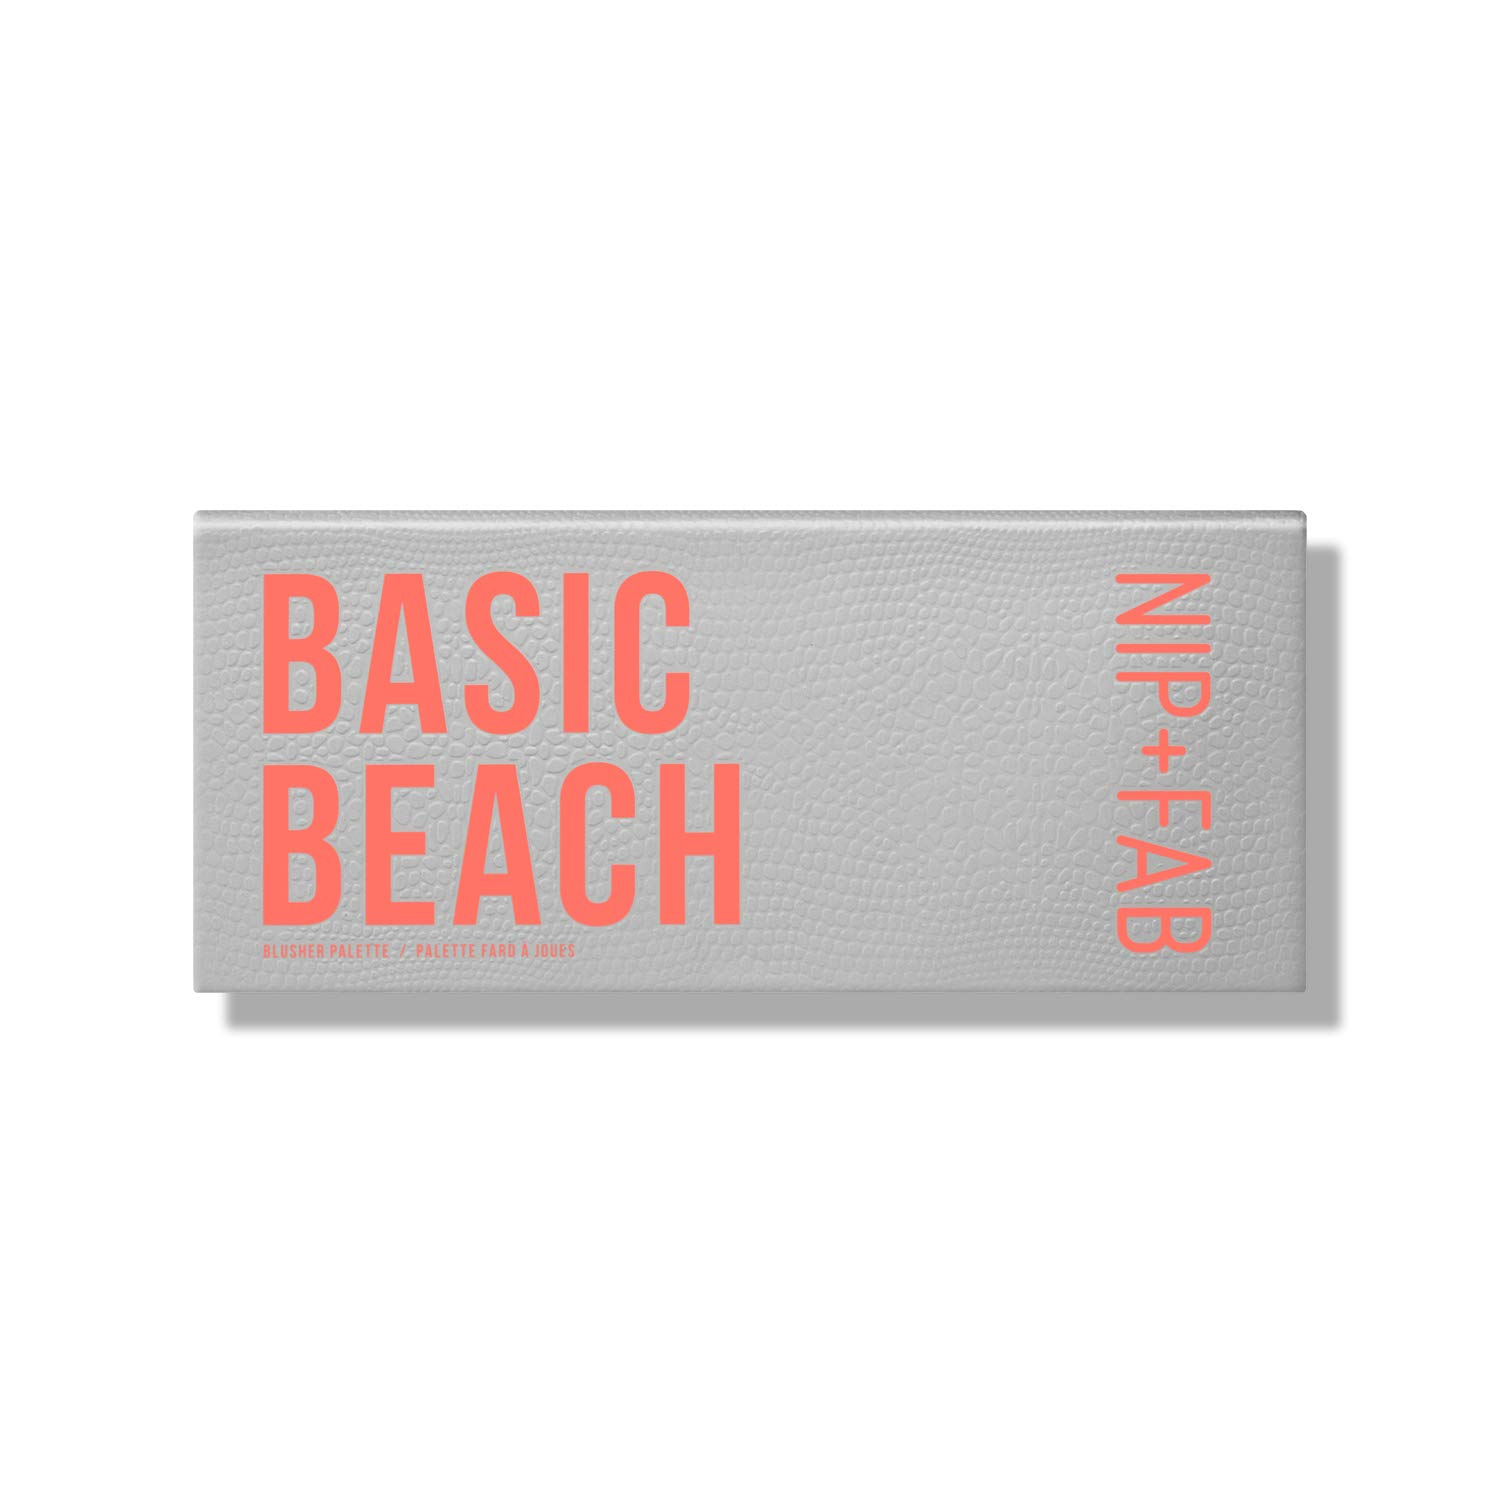 84% off NIP+FAB Blusher Palette Basic Beach 01(add on item)